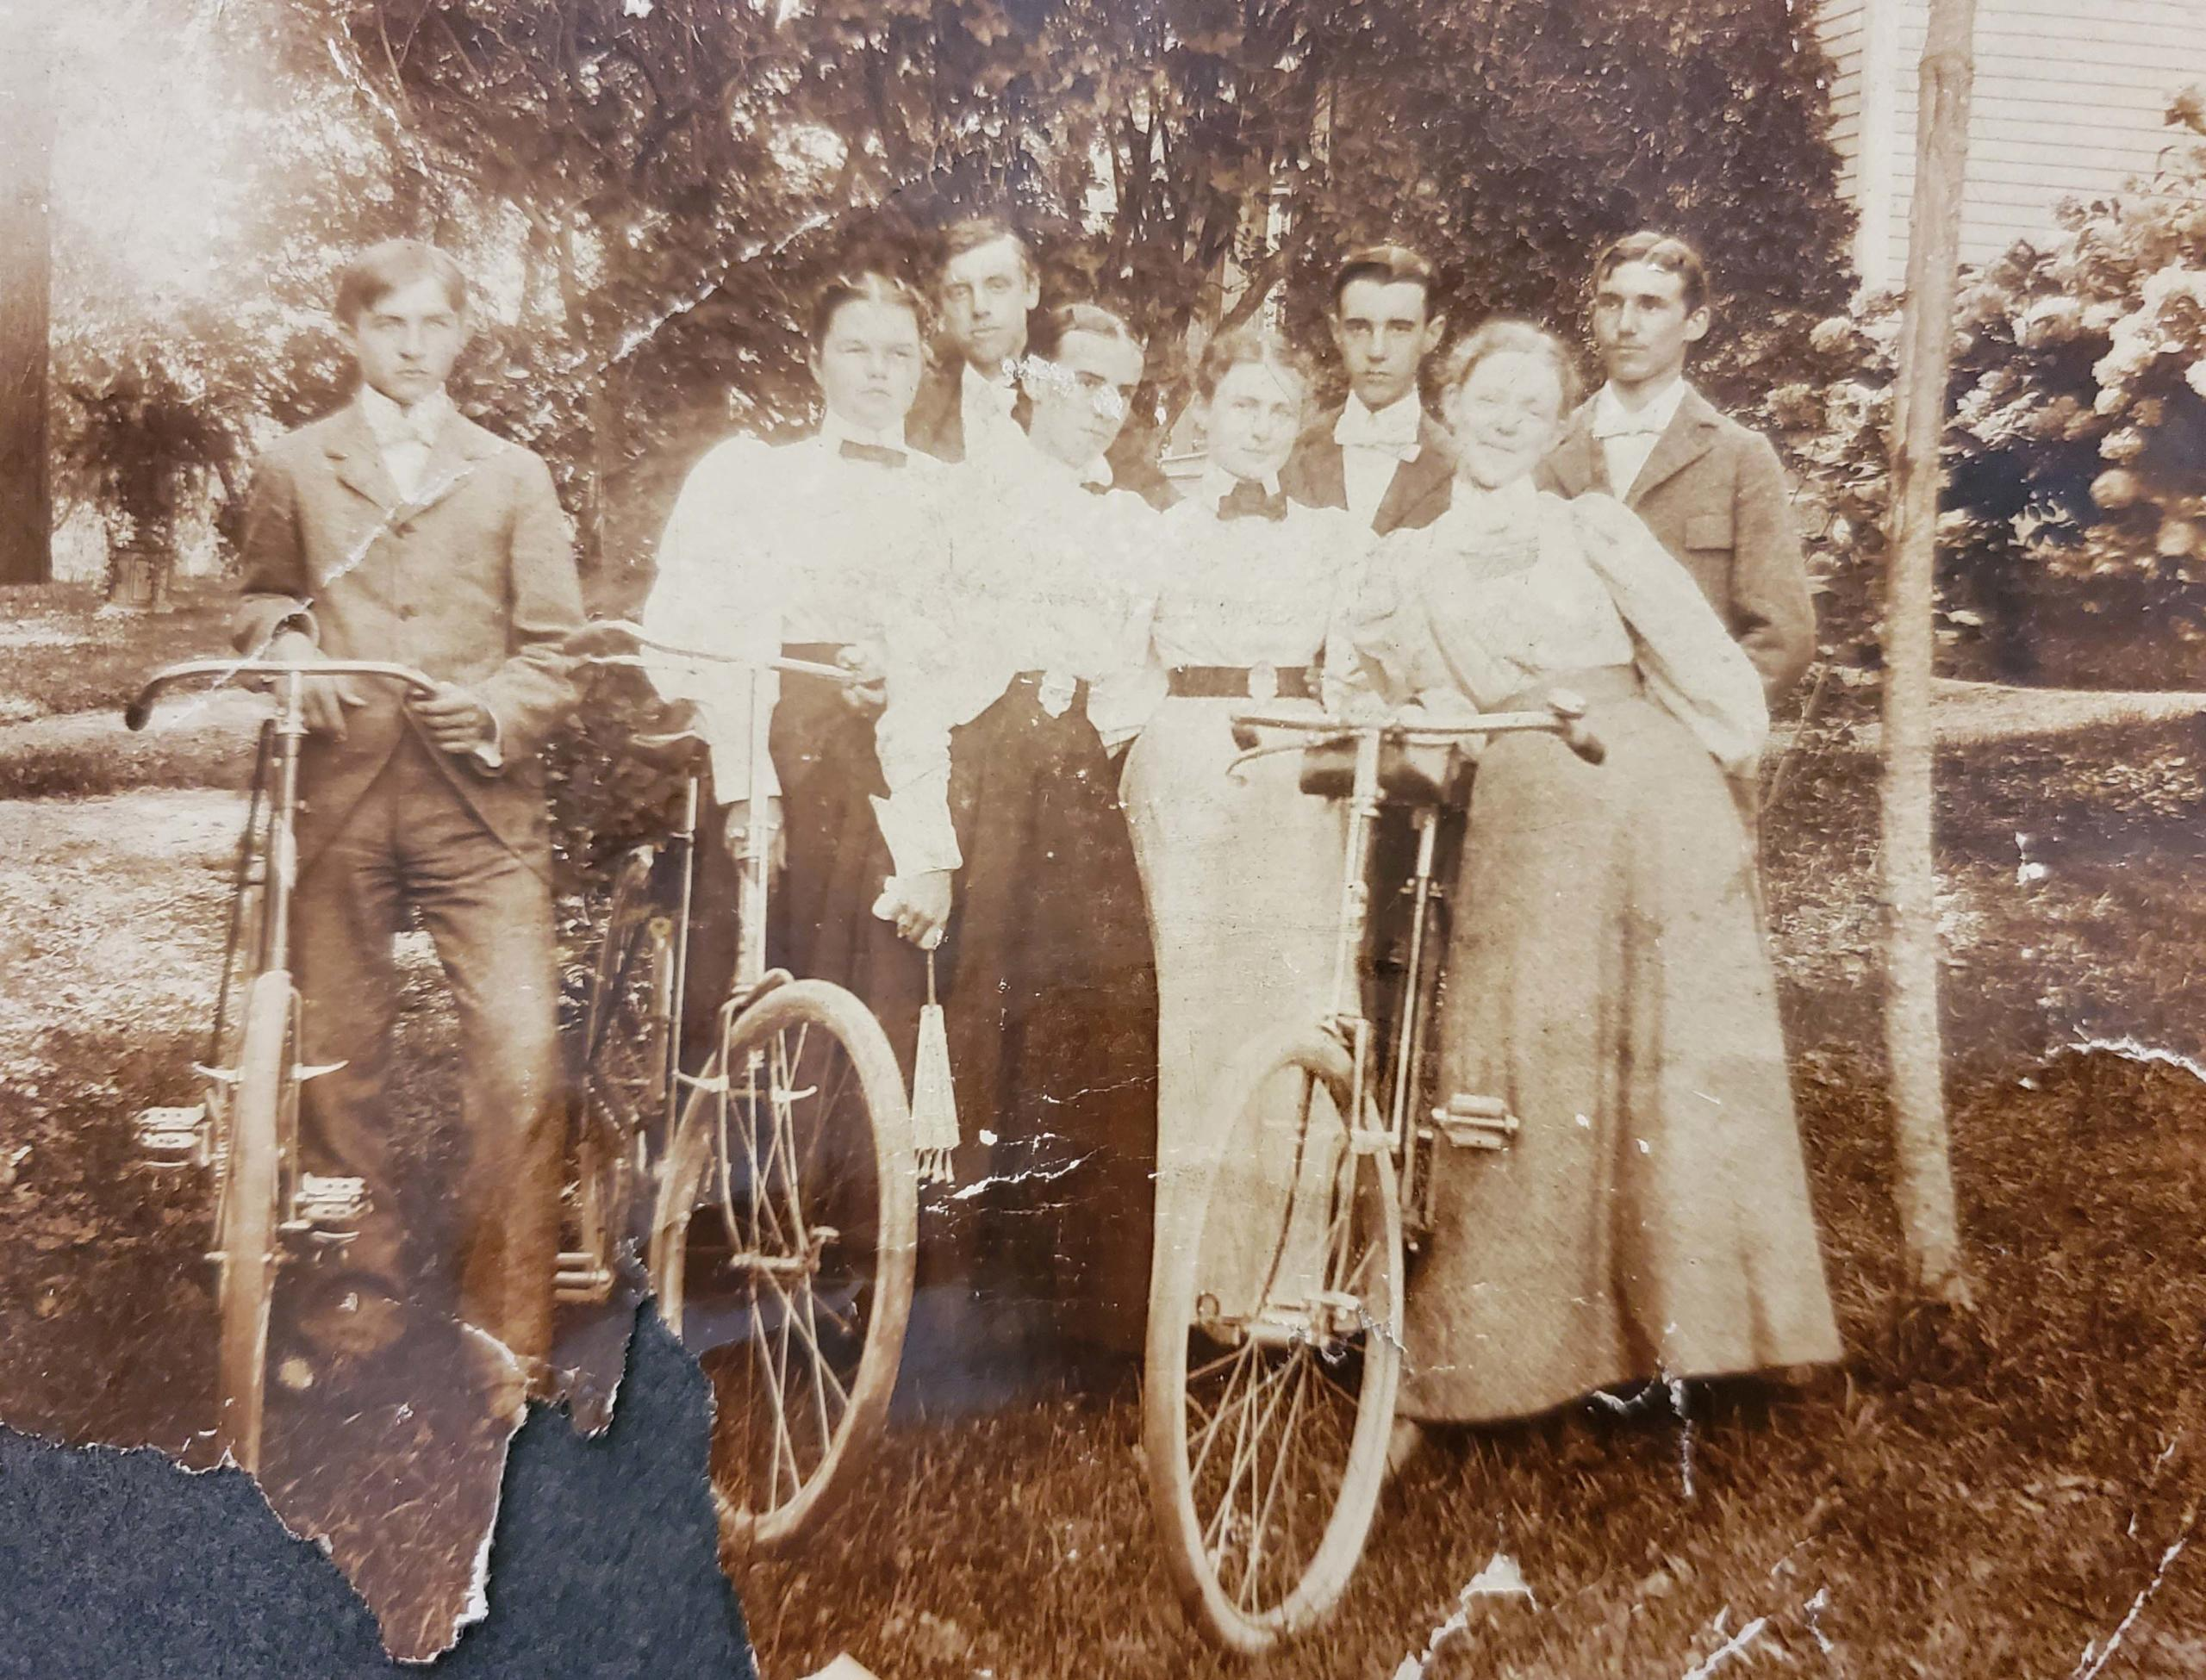 Vintage photo of Victorian ladies standing with bicycles